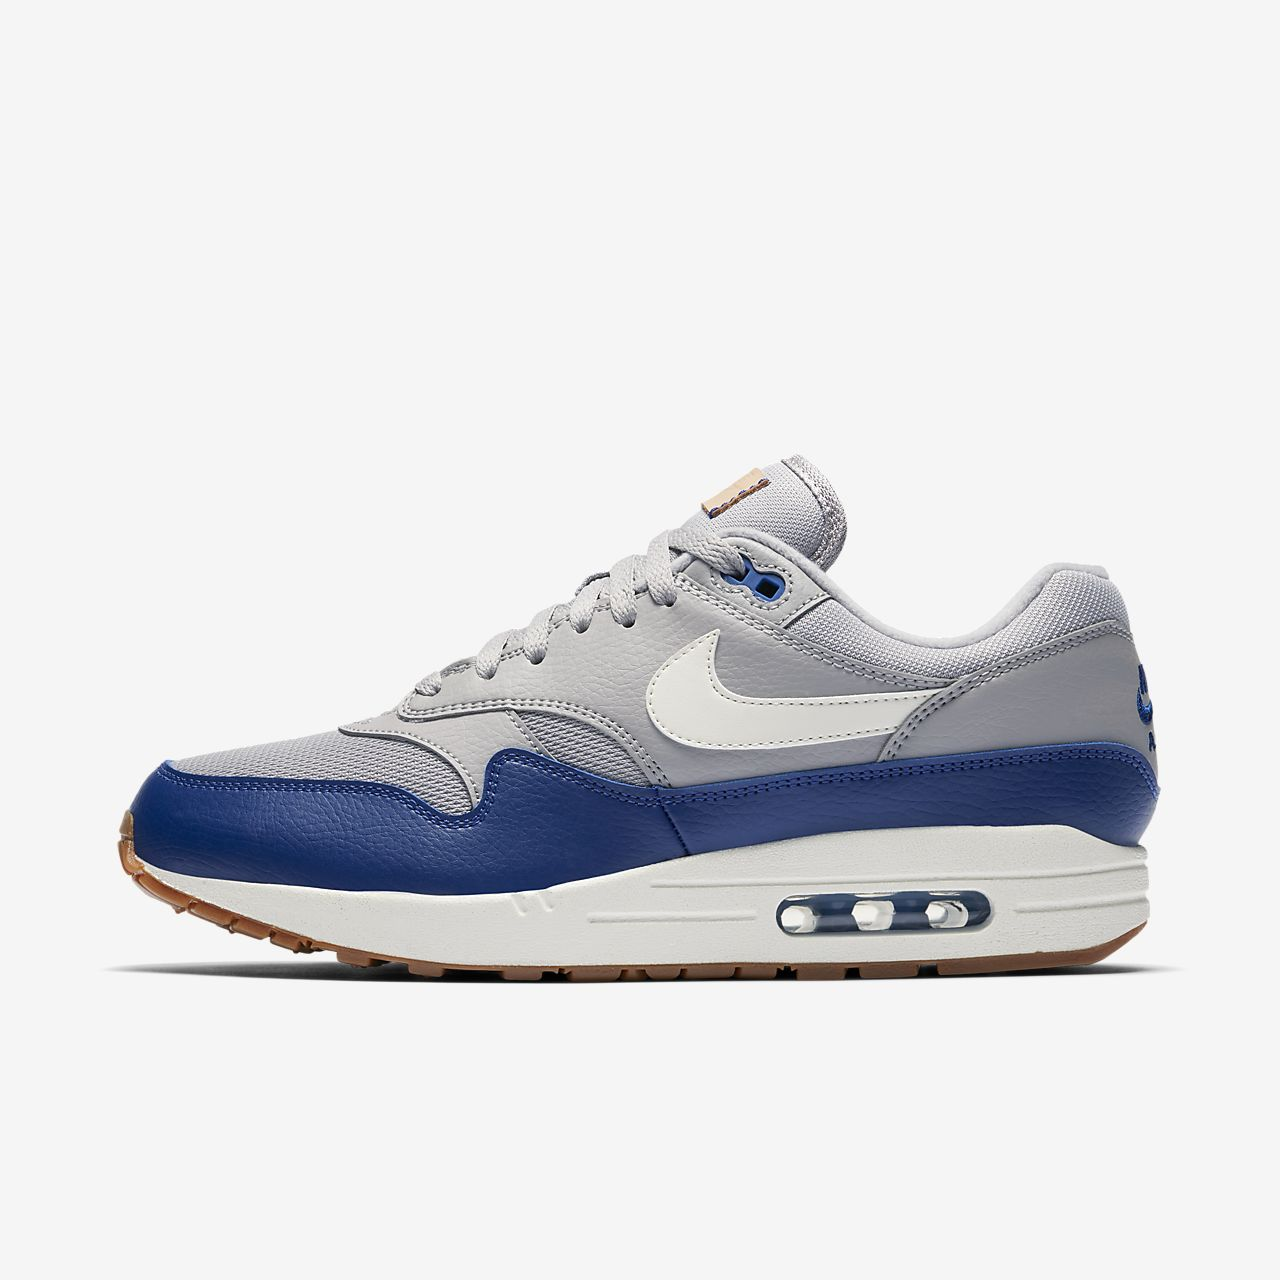 Image result for air max 1